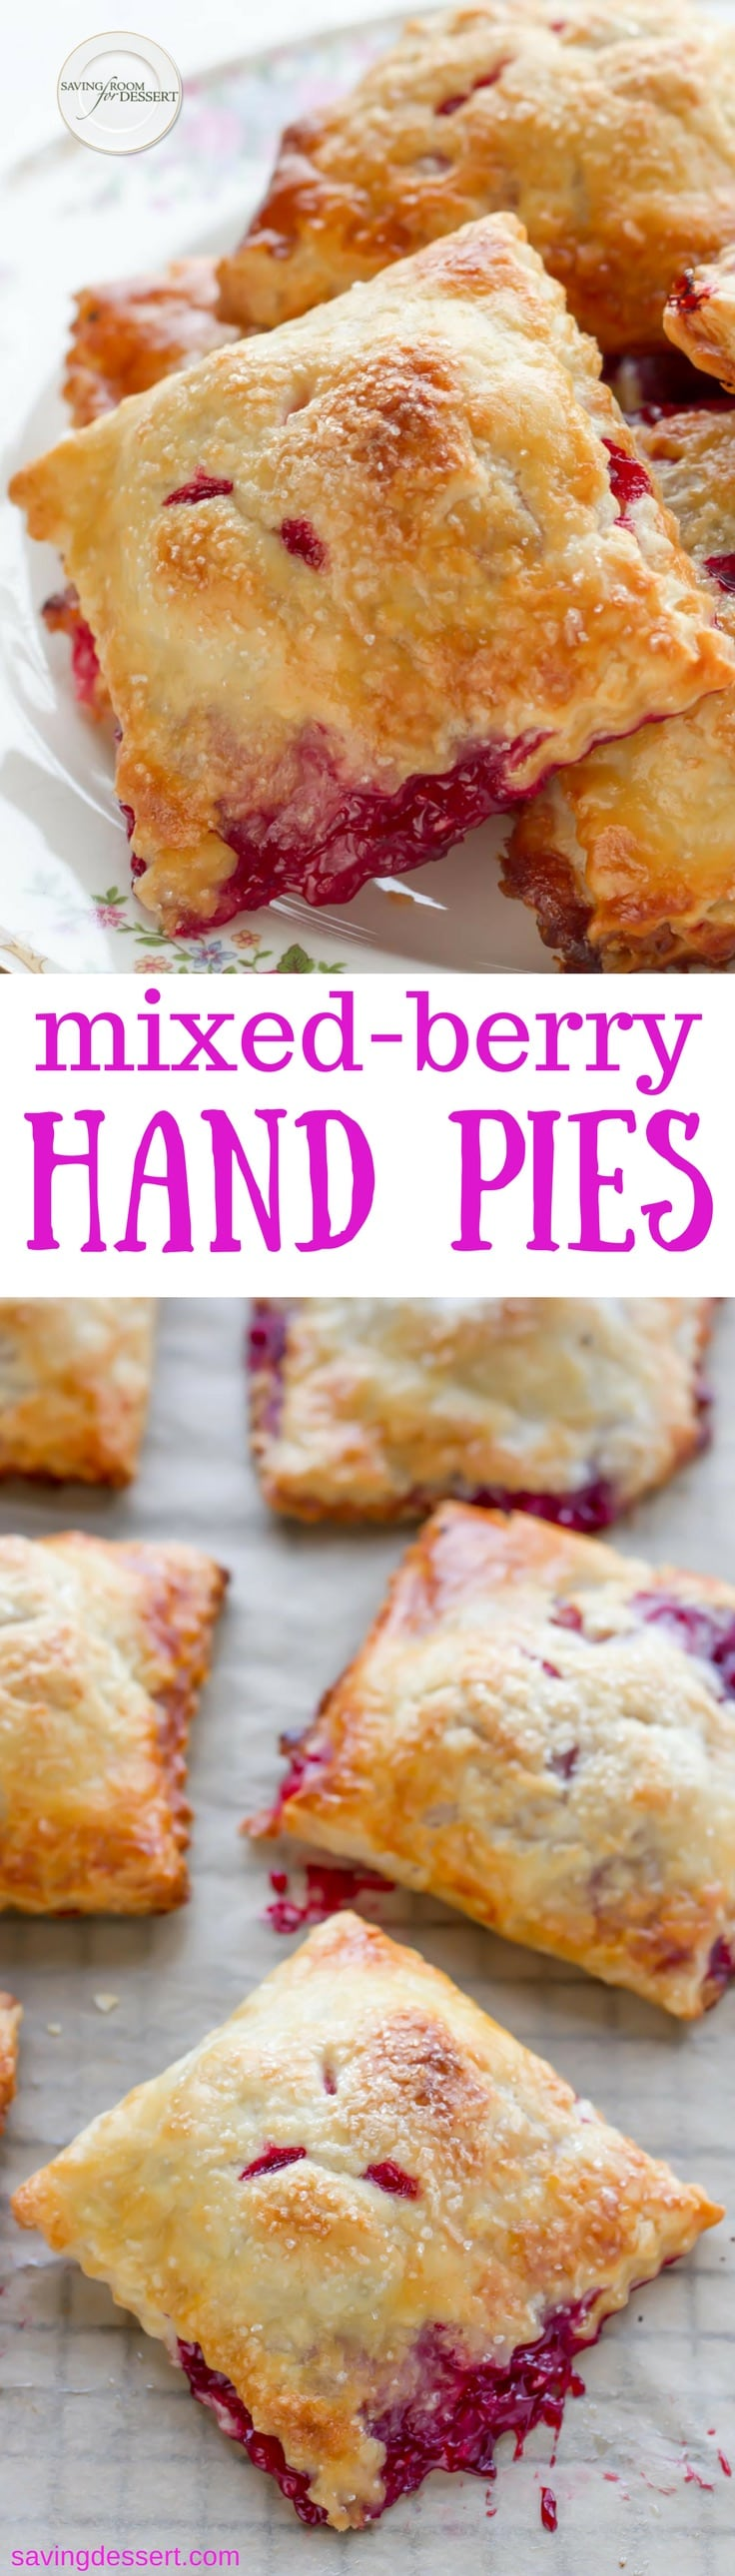 Mixed Berry Hand Pies with your favorite berries tucked inside a tender, flaky buttery crust. No fork needed! www.savingdessert.com #savingroomfordessert #berrypie #pie #handpies #easyhandpies #berryhandpies #dessert #baking